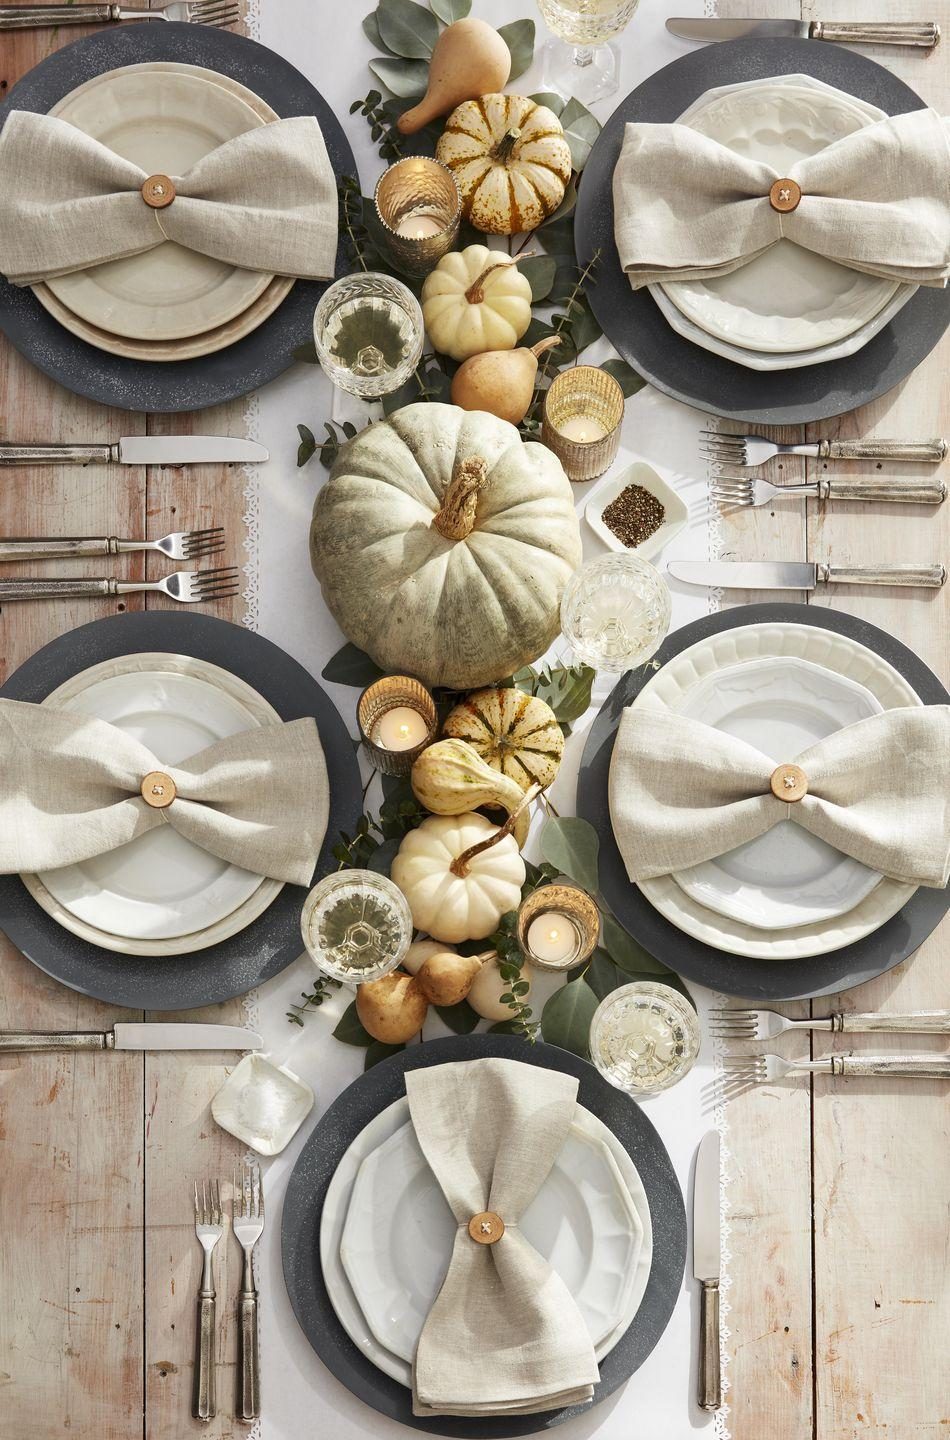 """<p>For a neutral yet bountiful tablescape simply line the center of the table with eucalyptus branches, neutral pumpkins and gourds, and painted pumpkins (see next slide). For a warm touch but votive candles in sparkly gold glass holders.<br><br><a class=""""link rapid-noclick-resp"""" href=""""https://www.amazon.com/Just-Artifacts-Speckled-Mercury-Tealight/dp/B01D1ZCPIA/ref=sr_1_3_sspa?tag=syn-yahoo-20&ascsubtag=%5Bartid%7C10050.g.2063%5Bsrc%7Cyahoo-us"""" rel=""""nofollow noopener"""" target=""""_blank"""" data-ylk=""""slk:SHOP GOLD VOTIVE HOLDERS"""">SHOP GOLD VOTIVE HOLDERS</a></p>"""